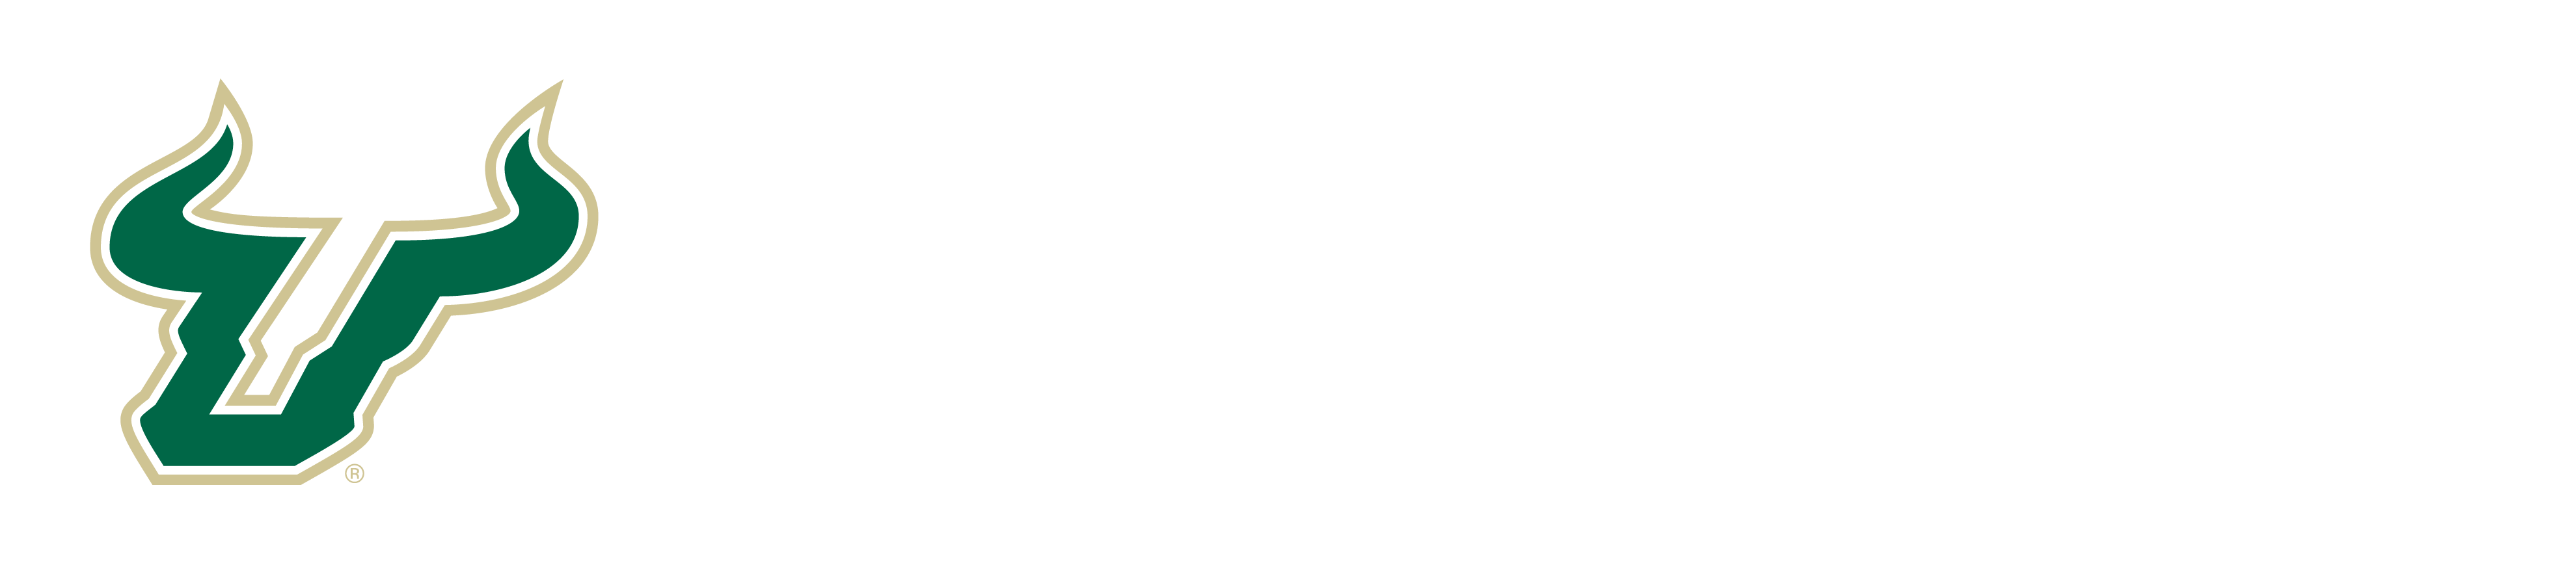 University of South Florida Bull logo.